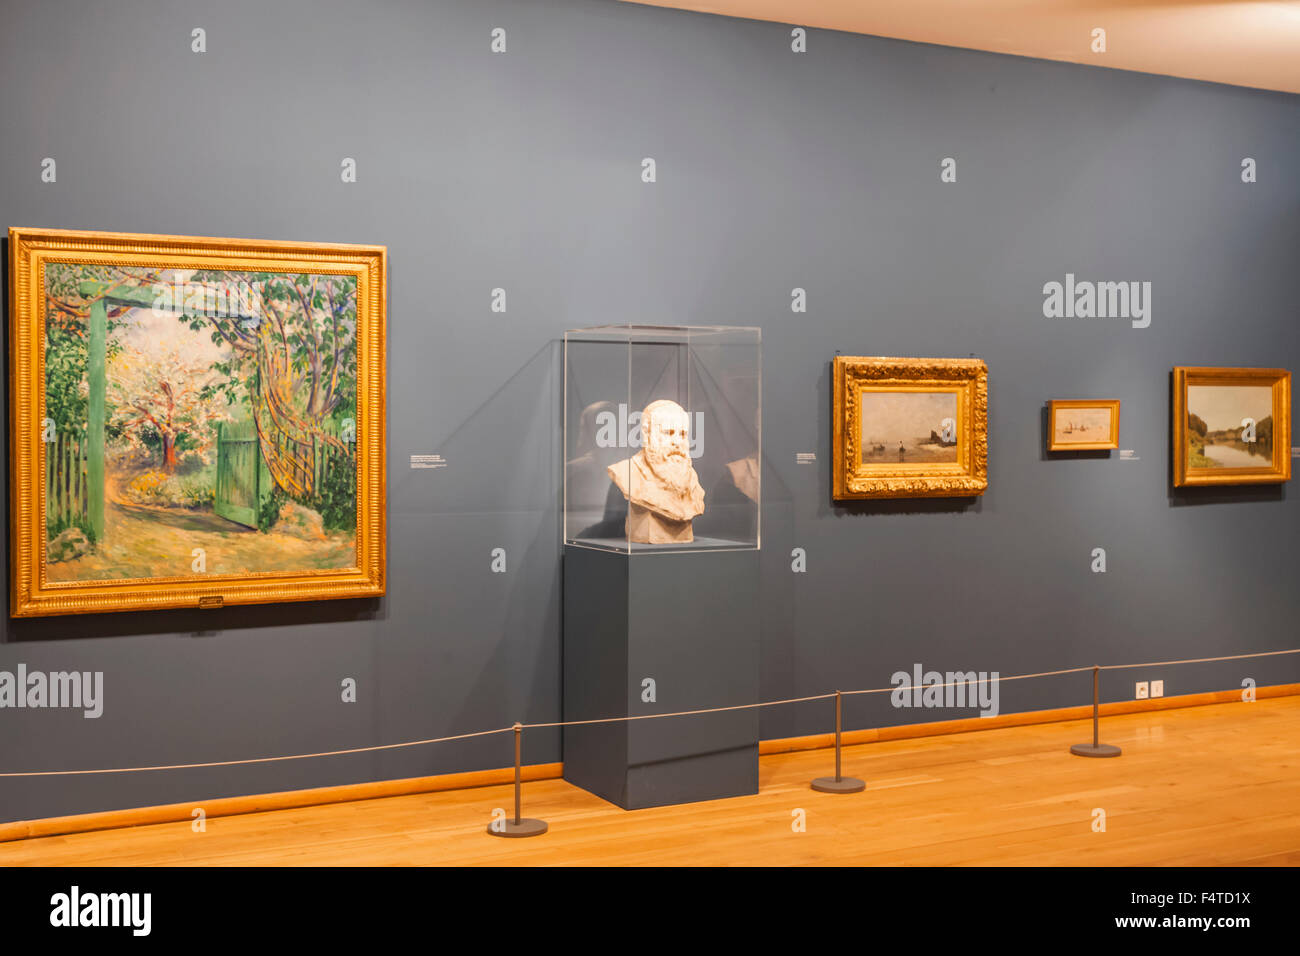 France, Normandy, Giverny, The Musee des Impressionisms aka The Impressionist Museum - Stock Image